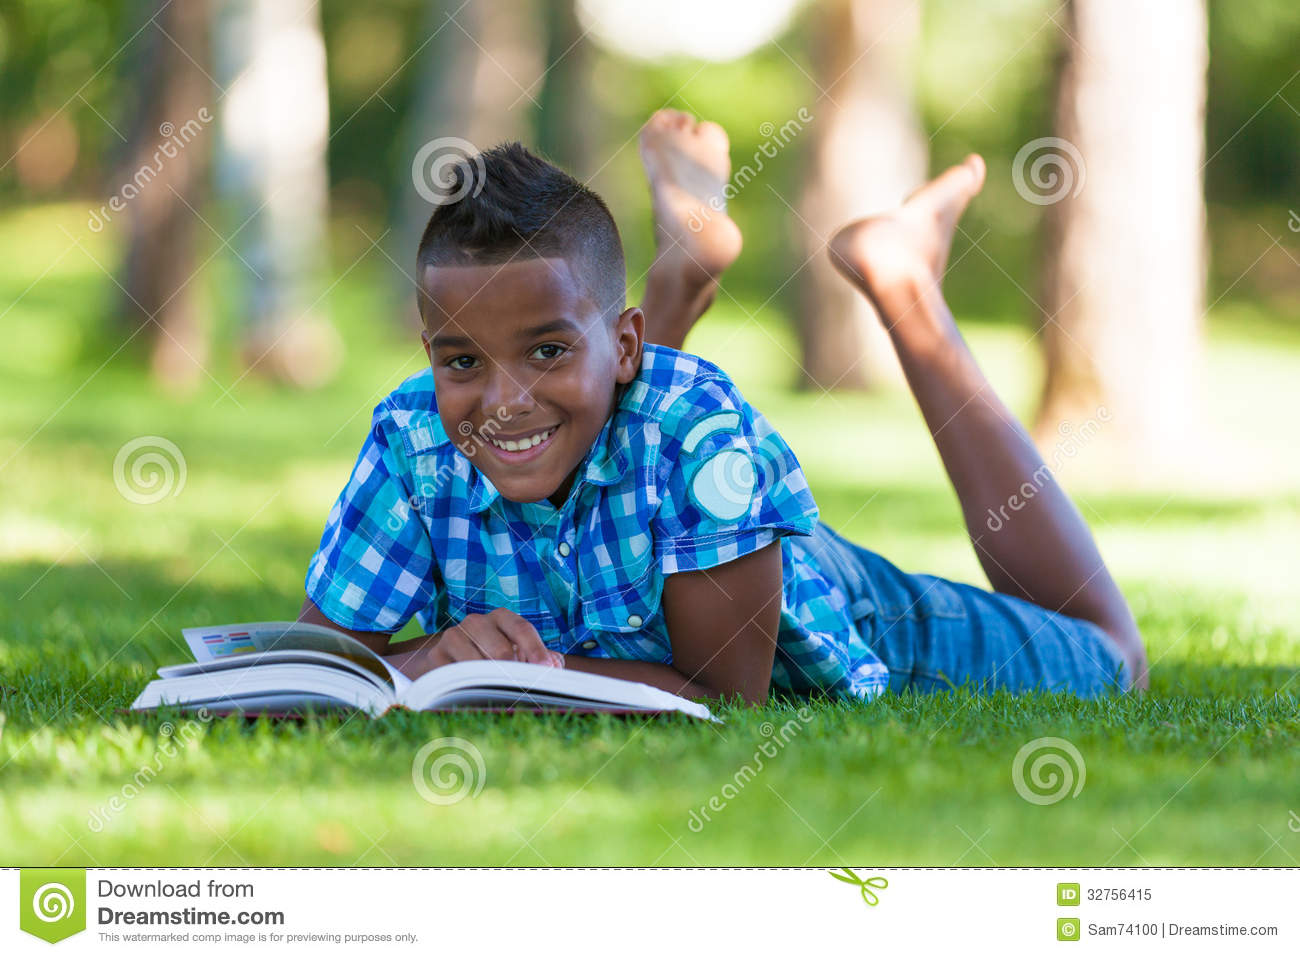 Outdoor portrait of student black boy reading a book